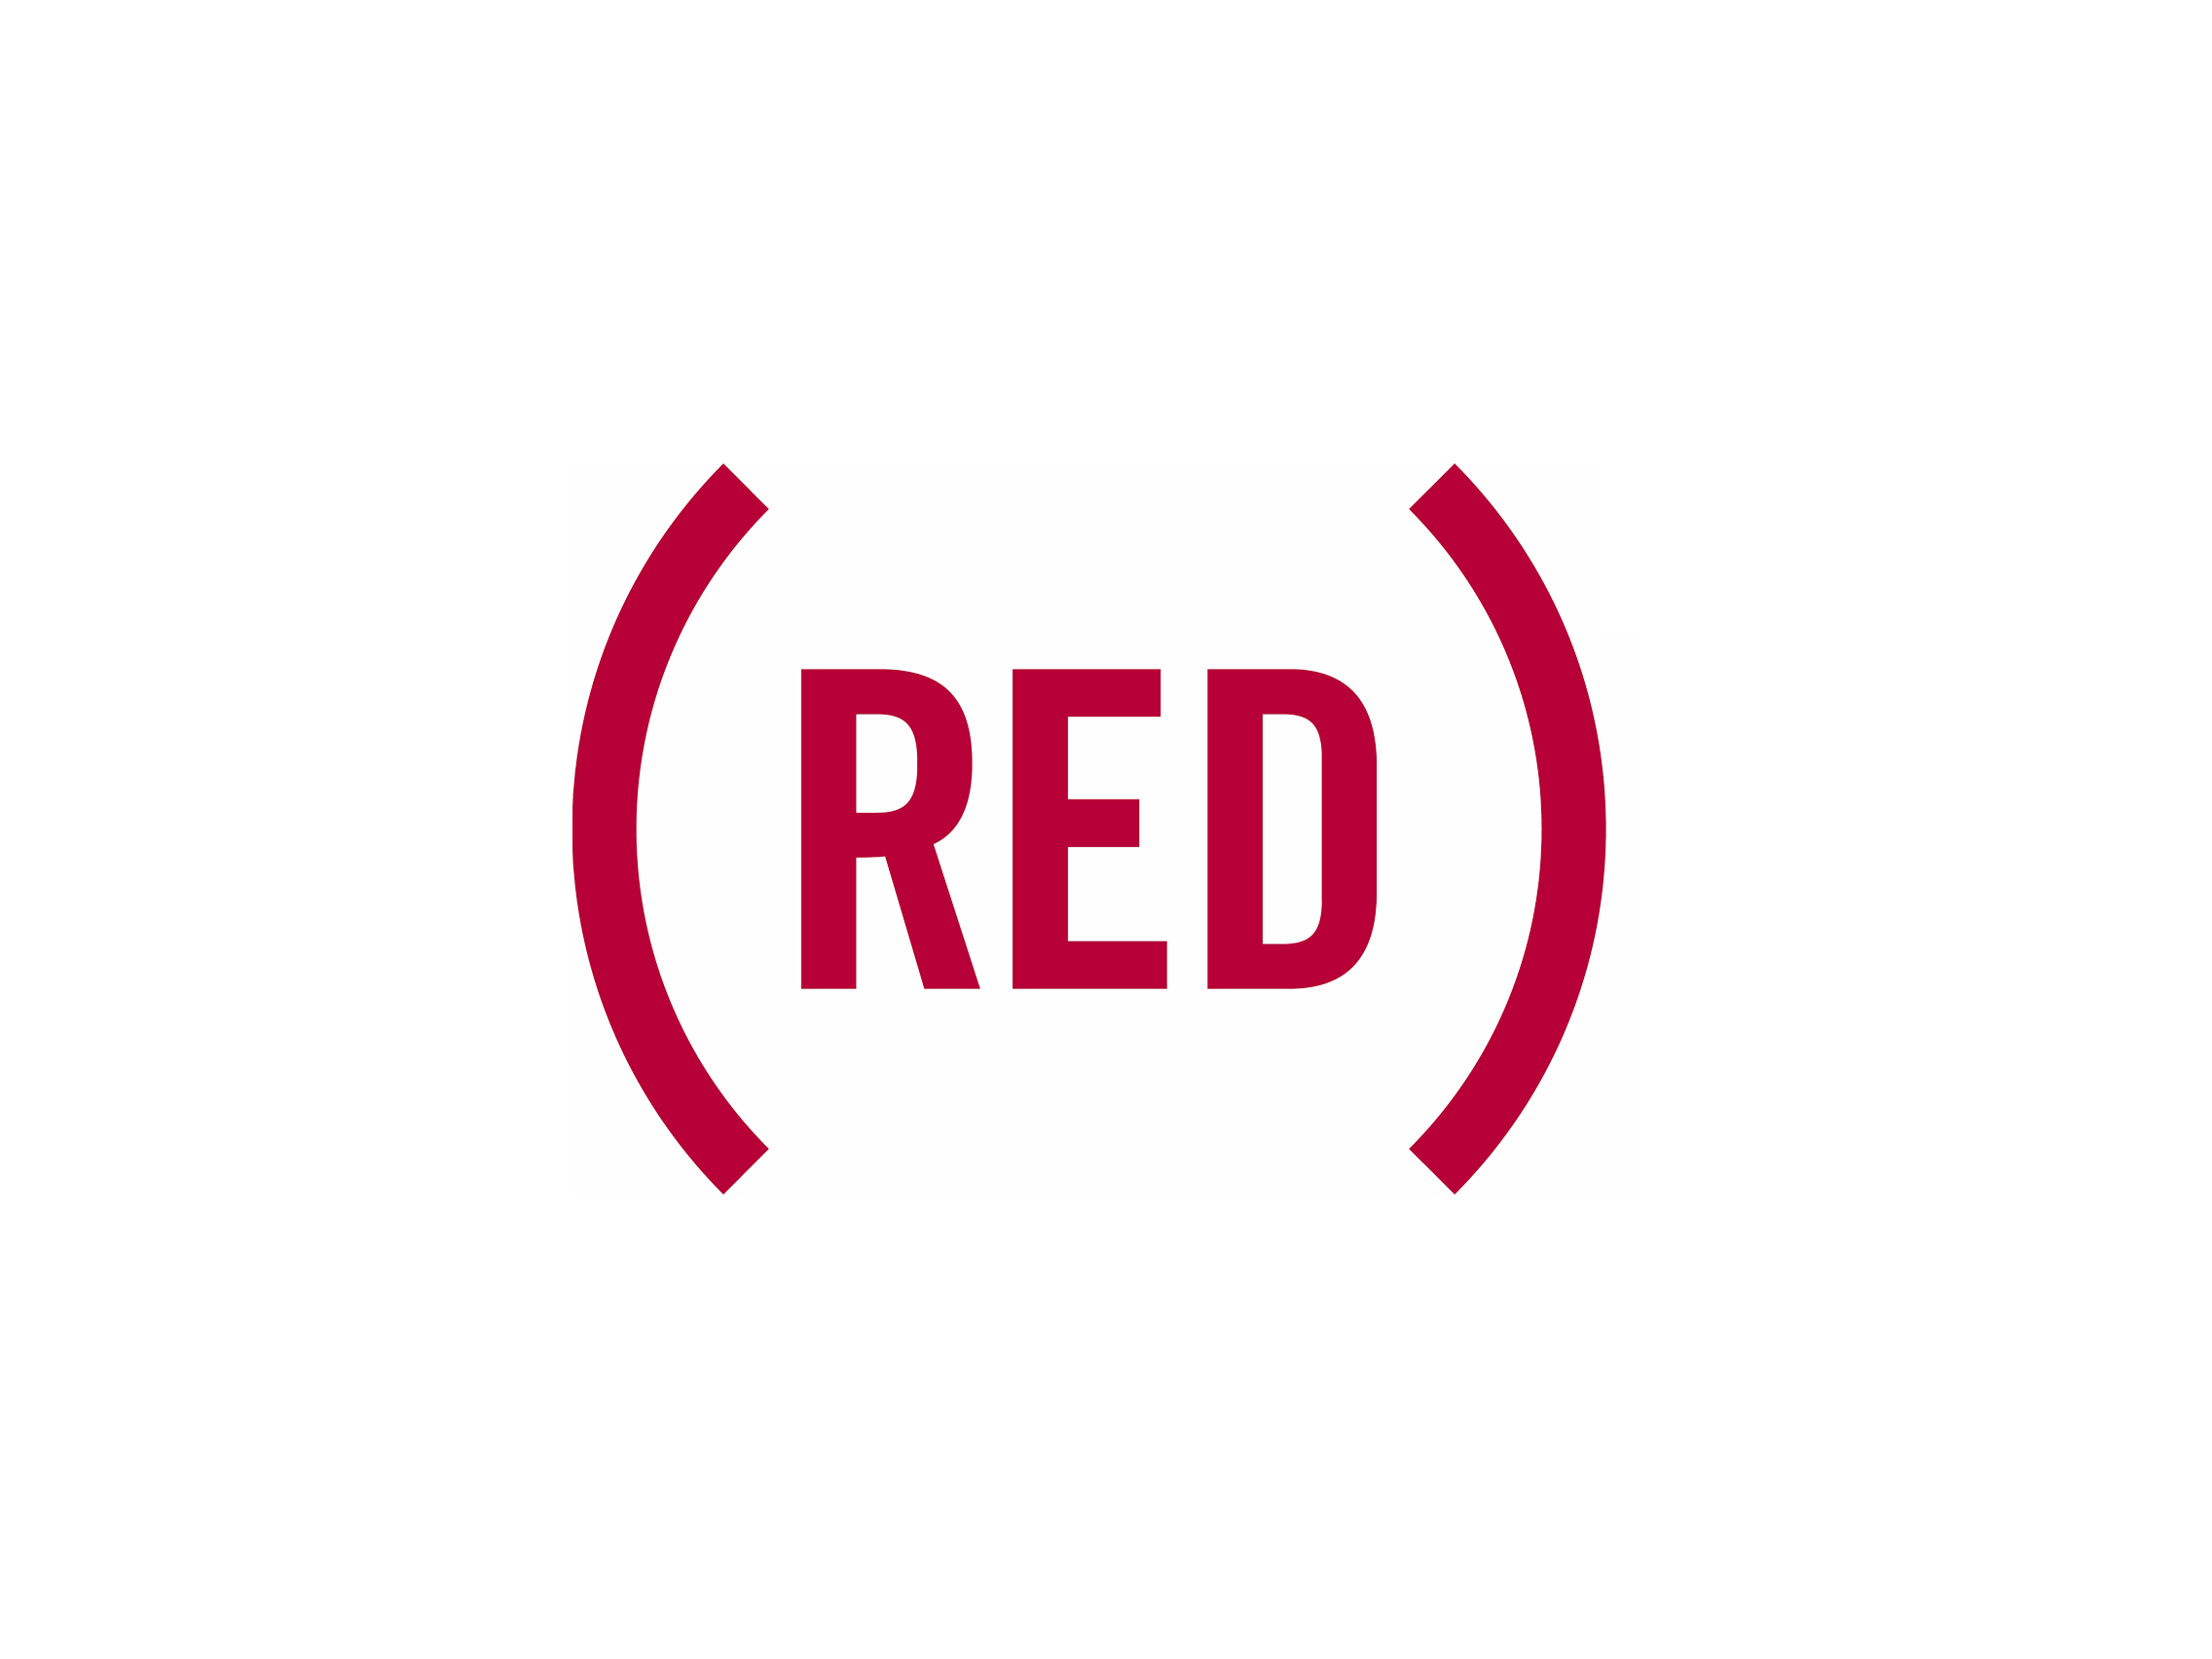 RedR Logo - Red charity Logos